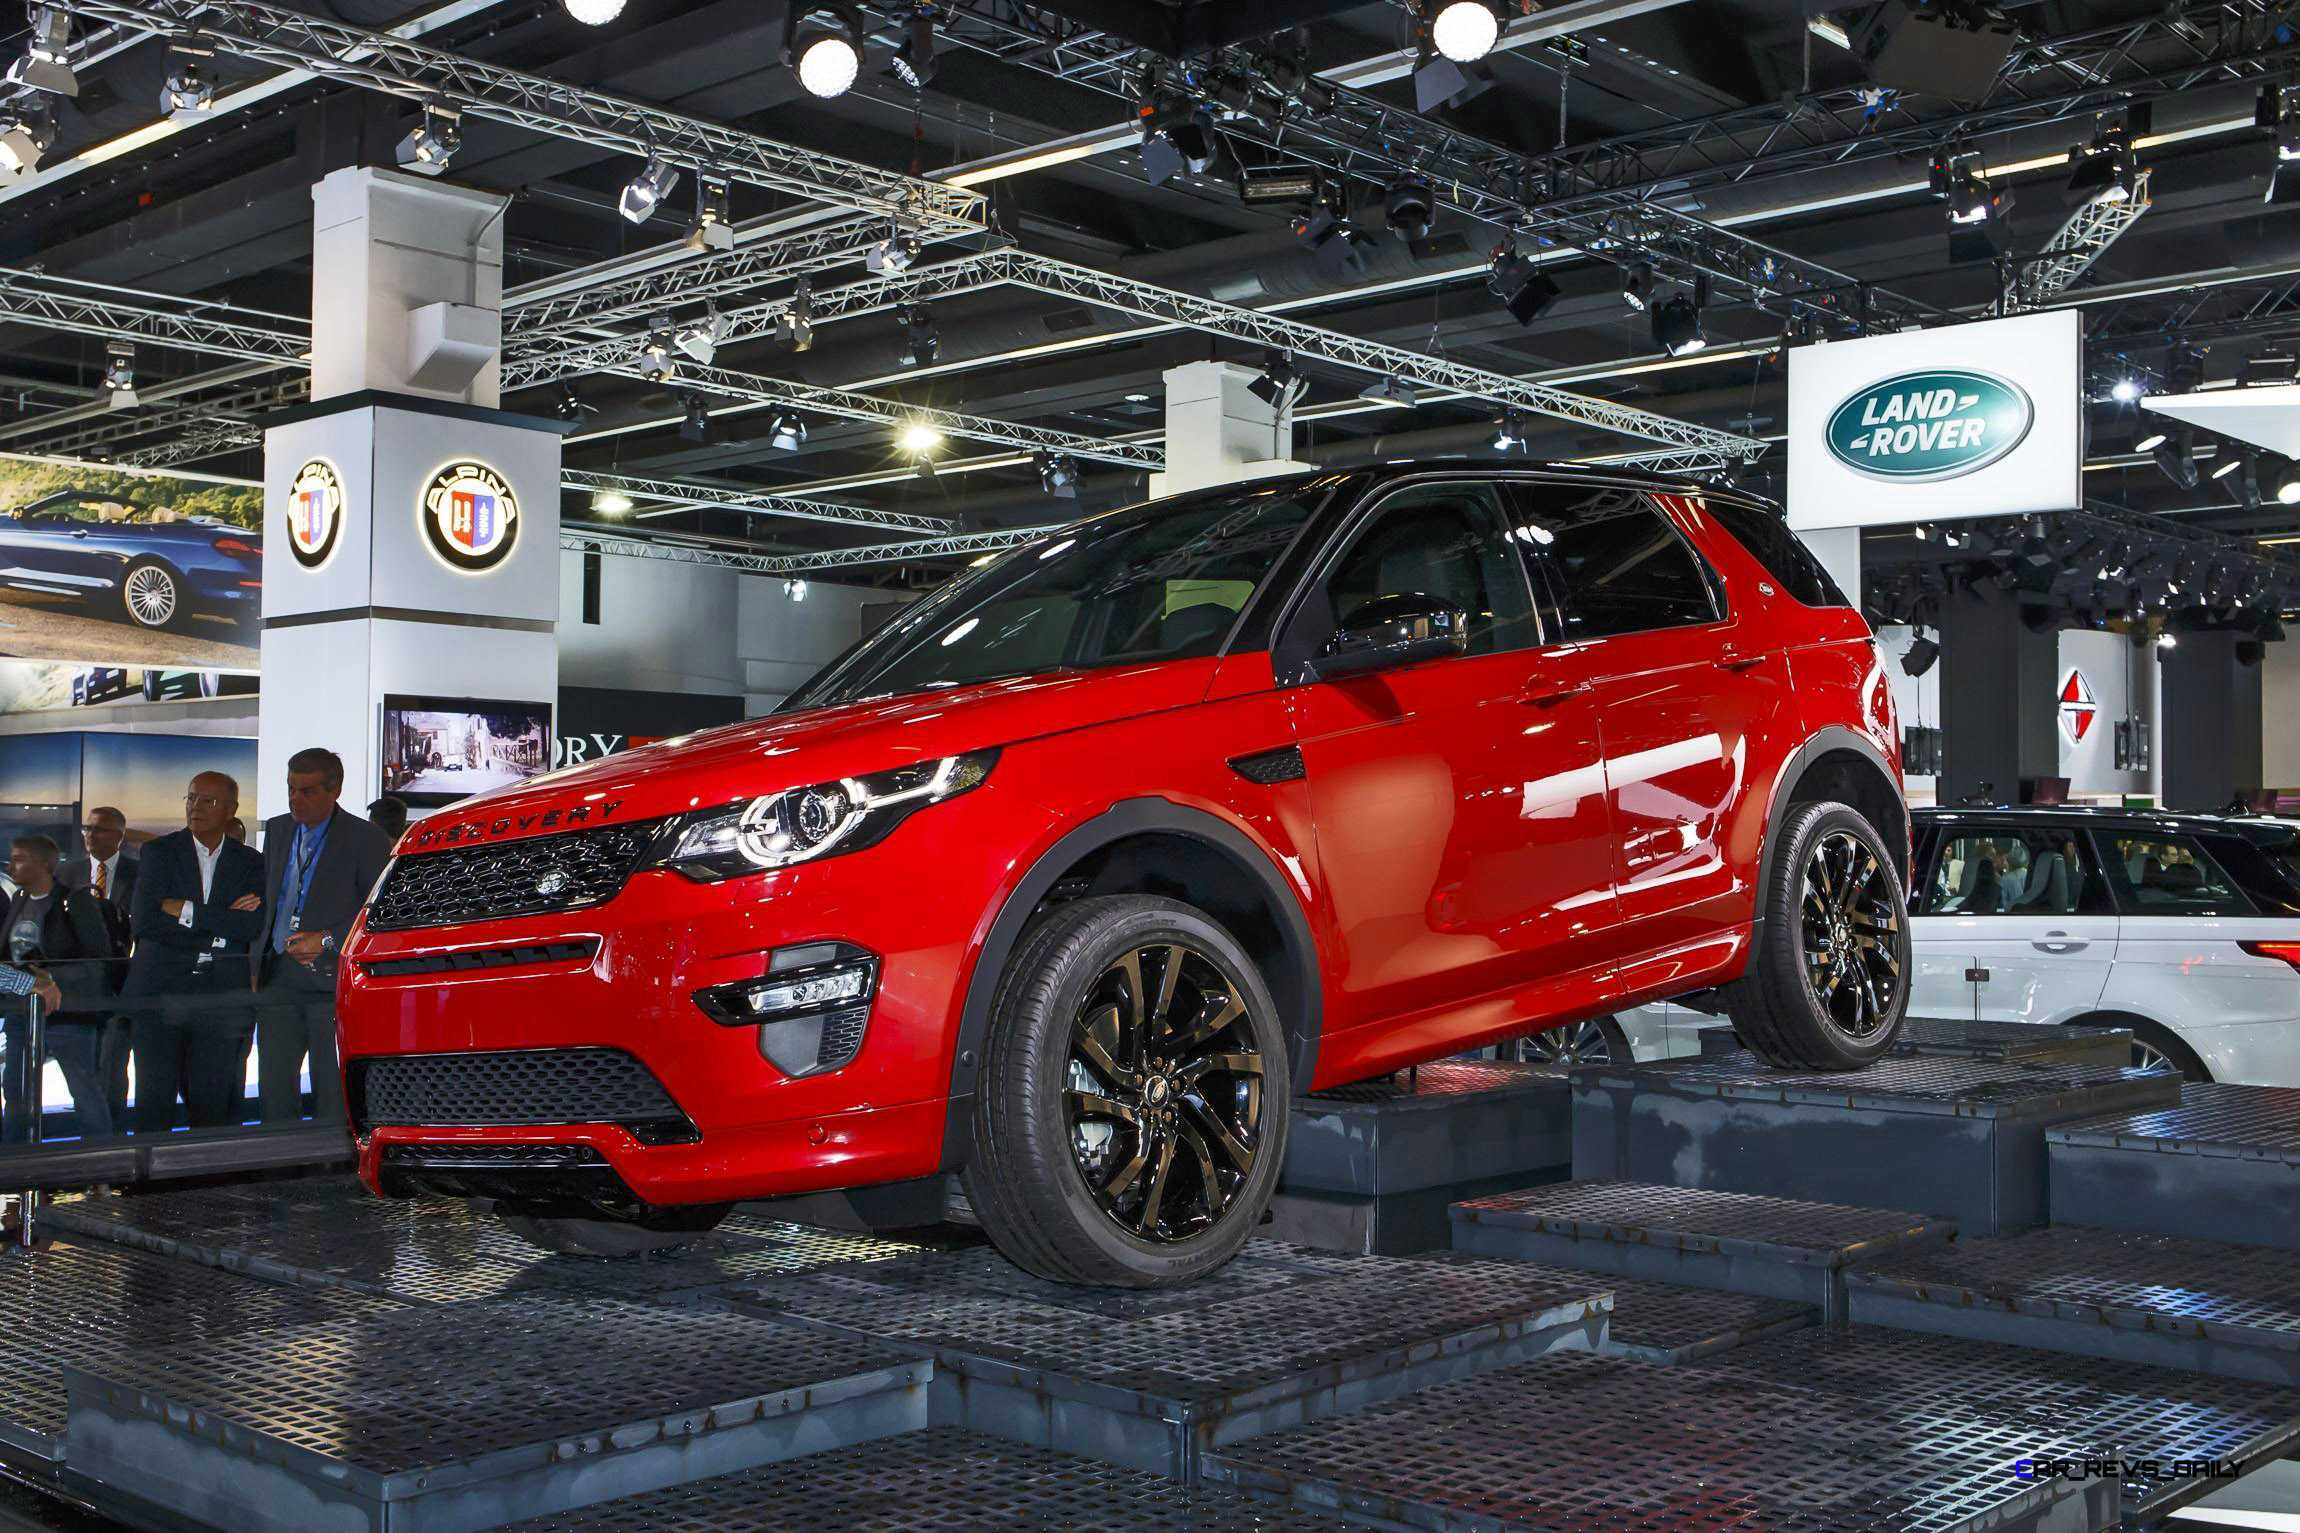 http://www.car-revs-daily.com/wp-content/uploads/2015/09/2016-Land-Rover-Discovery-Sport-DYNAMIC-5.jpg